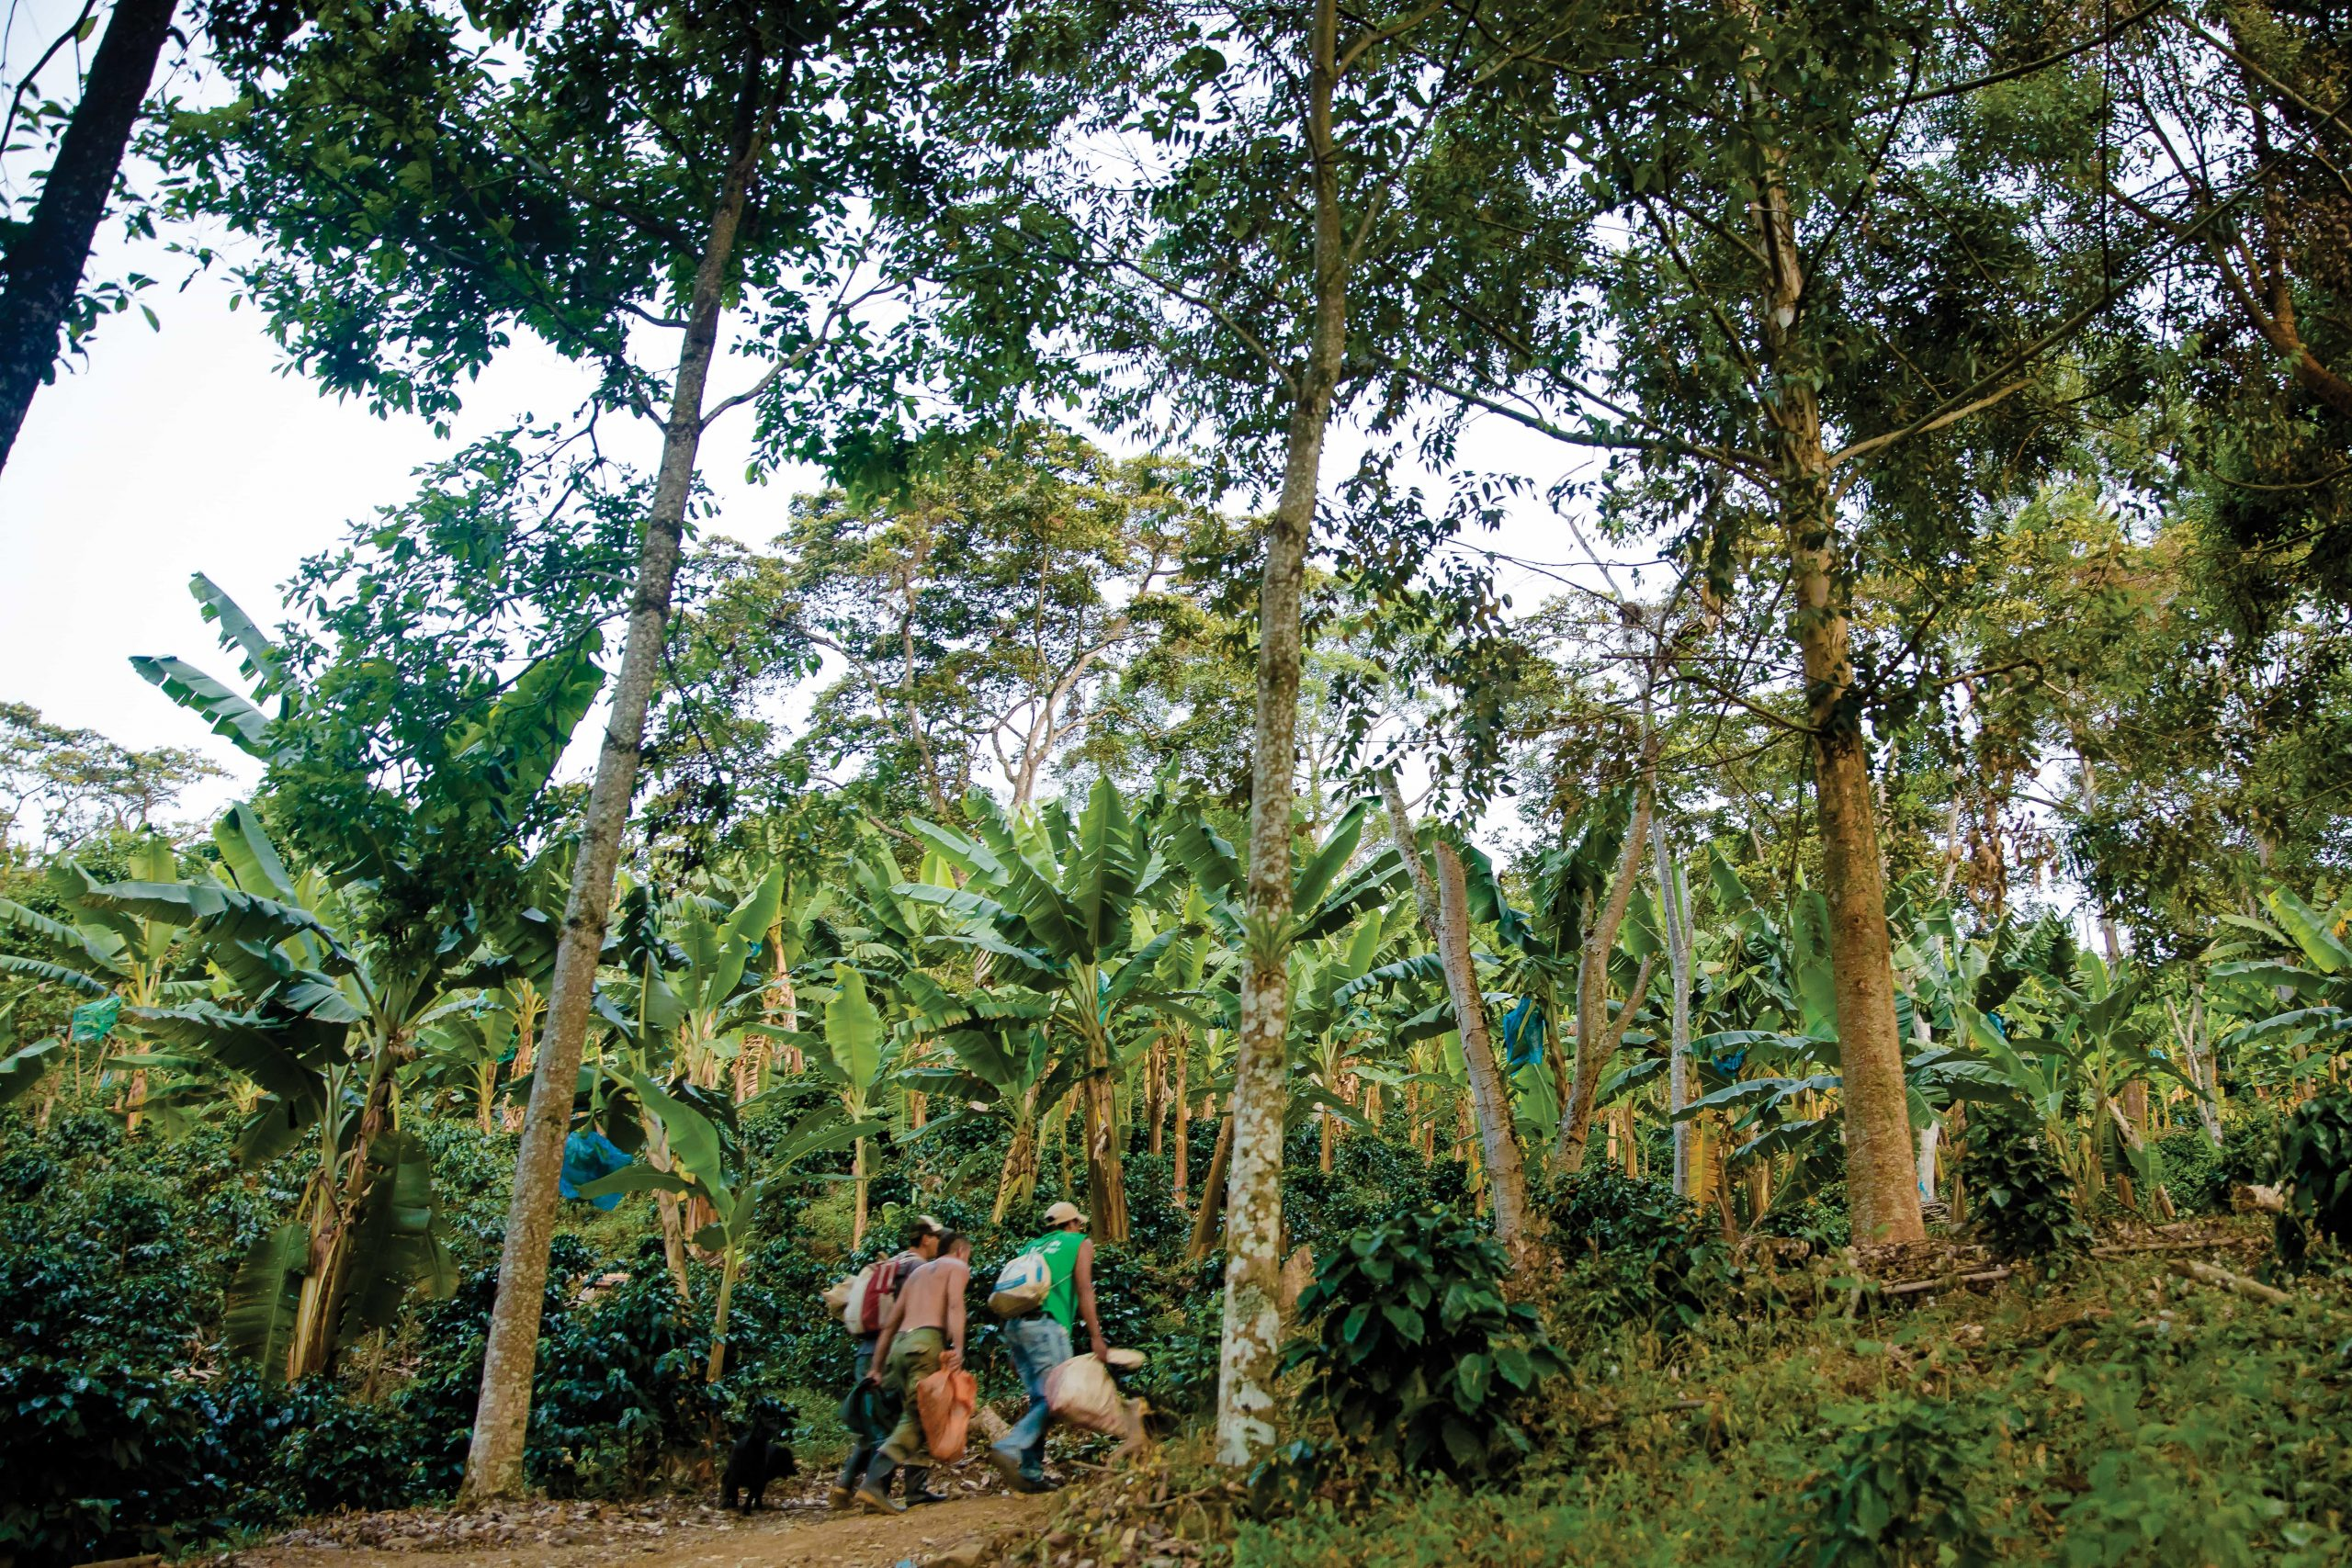 Colombian coffee exports in May drop 52% from May 2020 due to roadblocks and protests